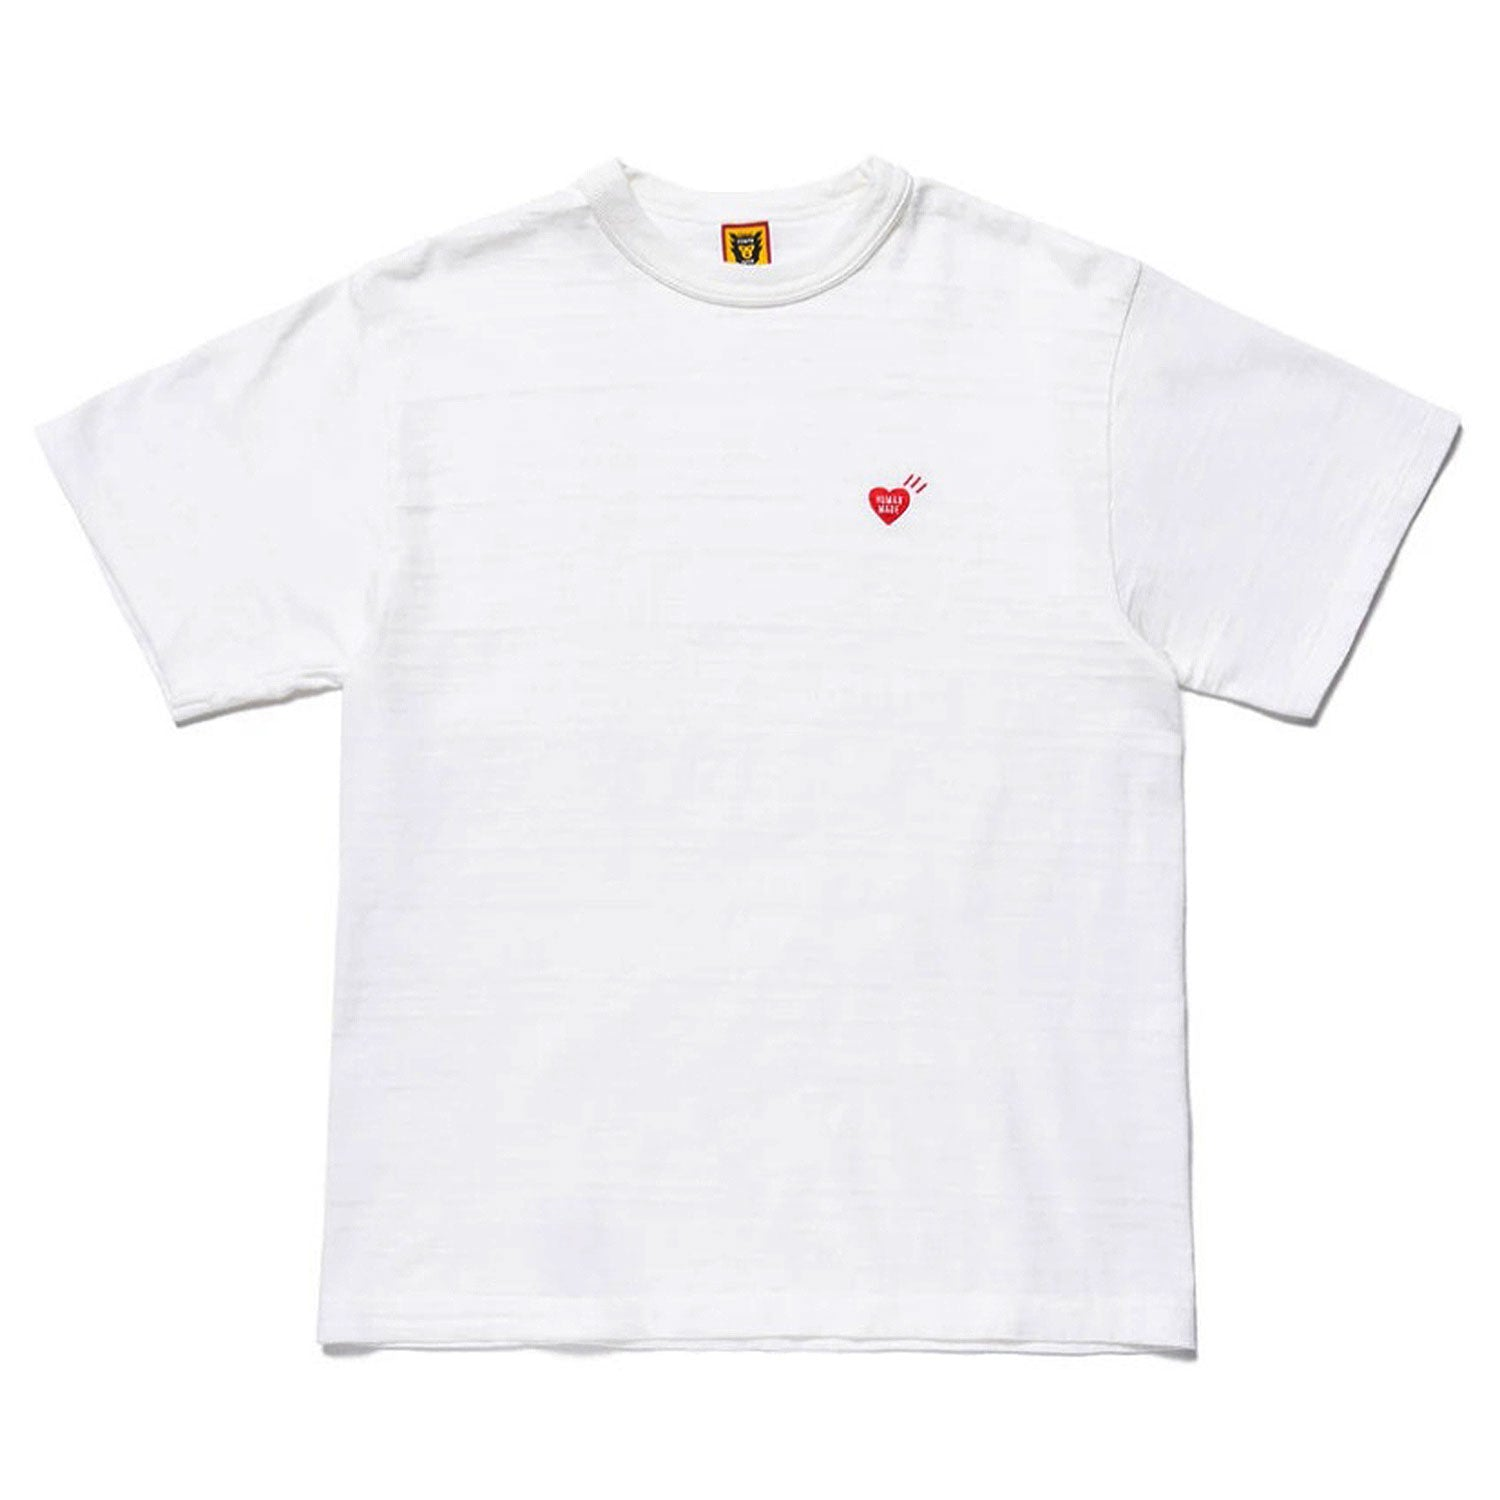 HEART ONE POINT T-SHIRT